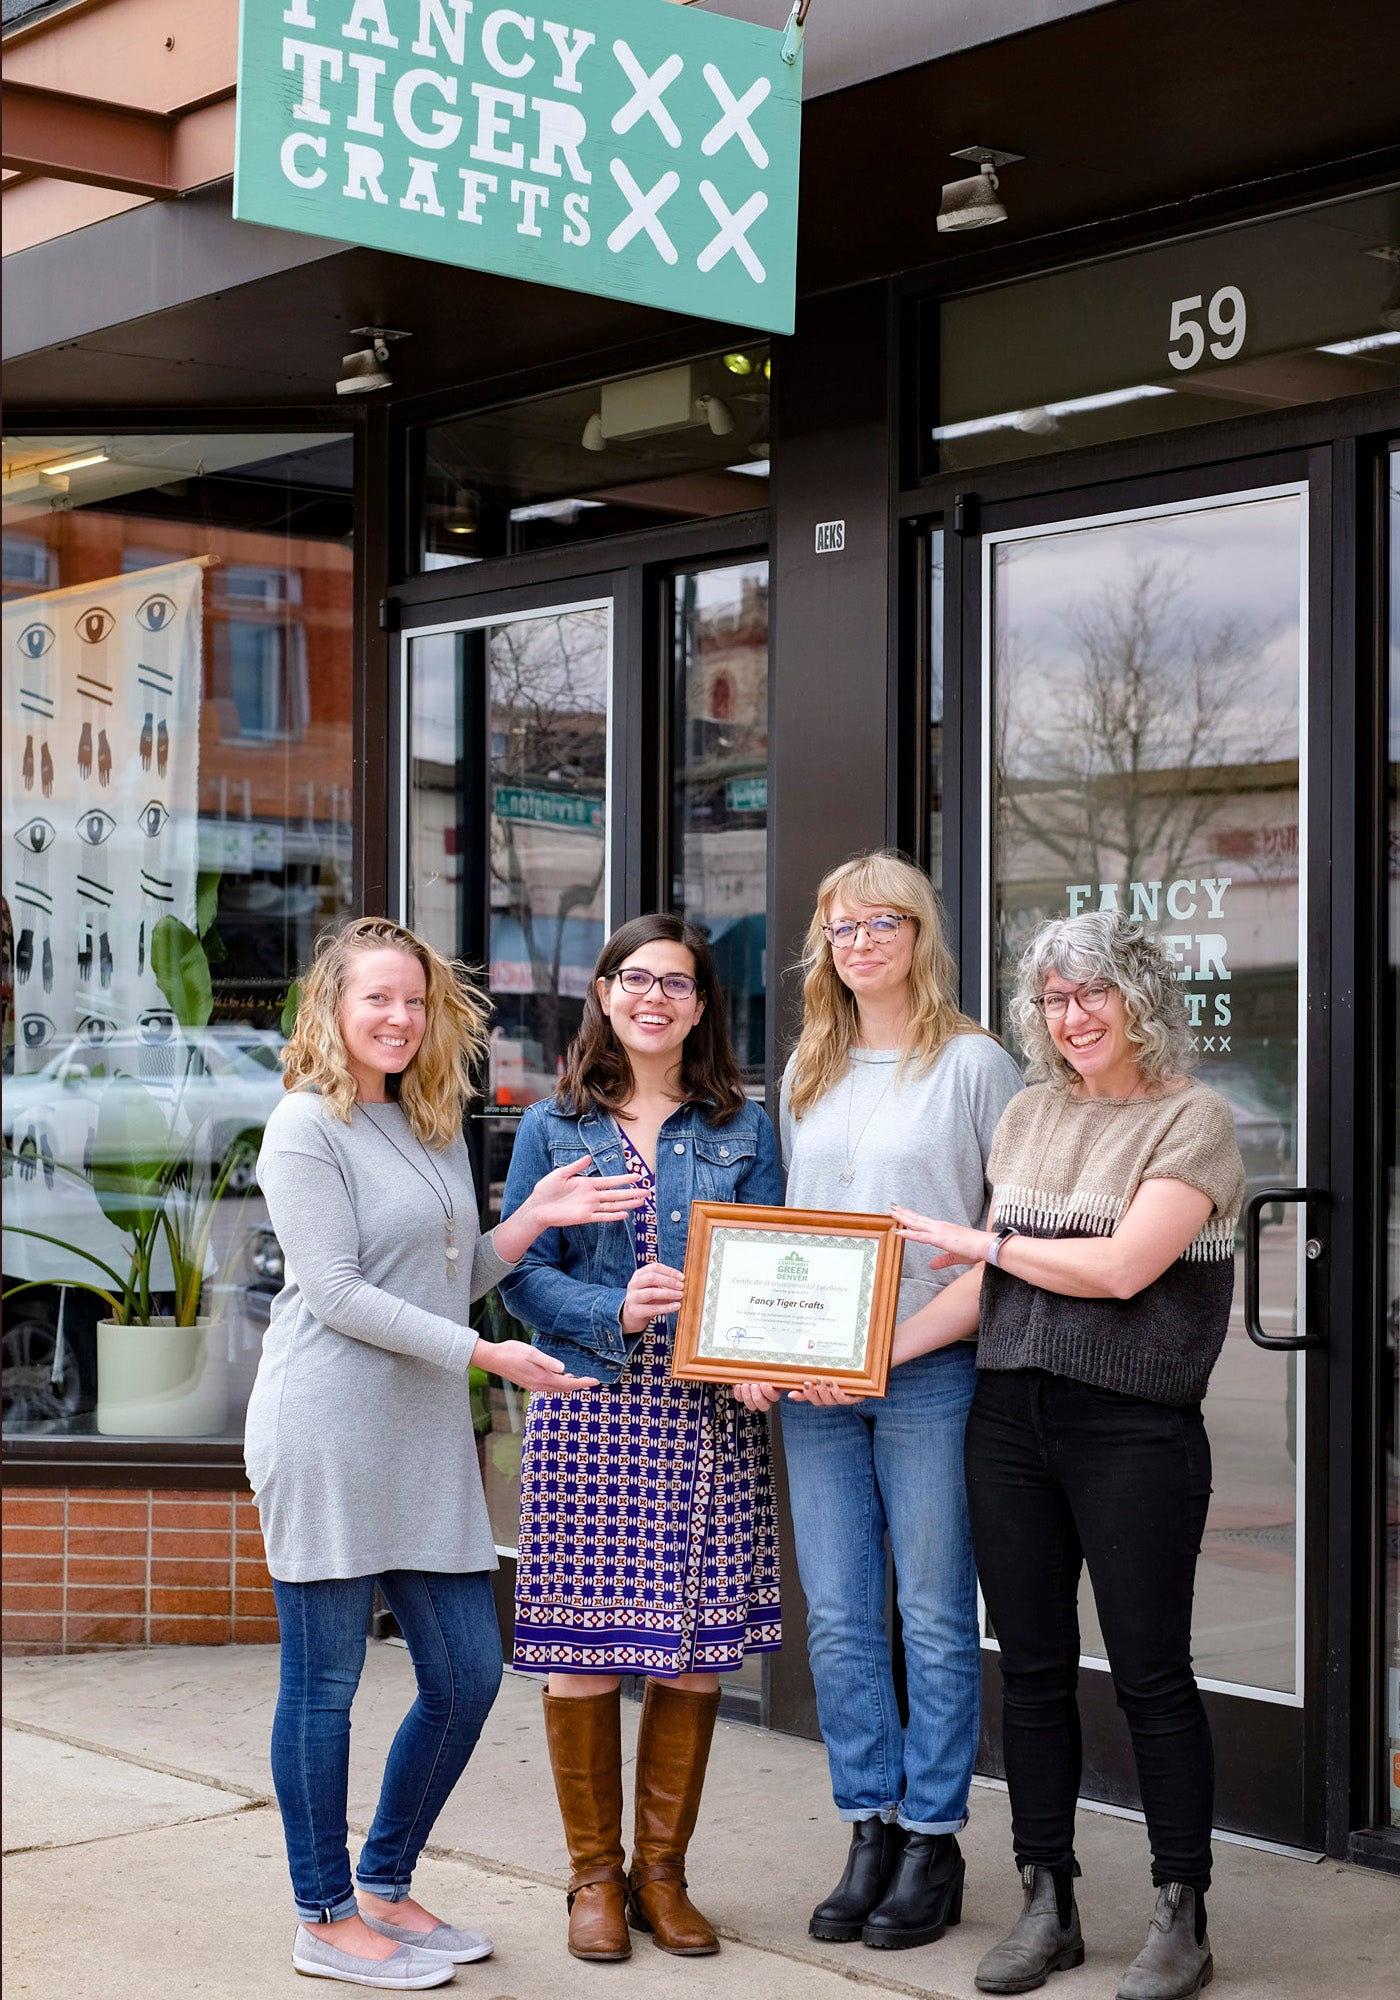 Fancy Tiger Crafts Green Team with the Certifiably Denver Certificate